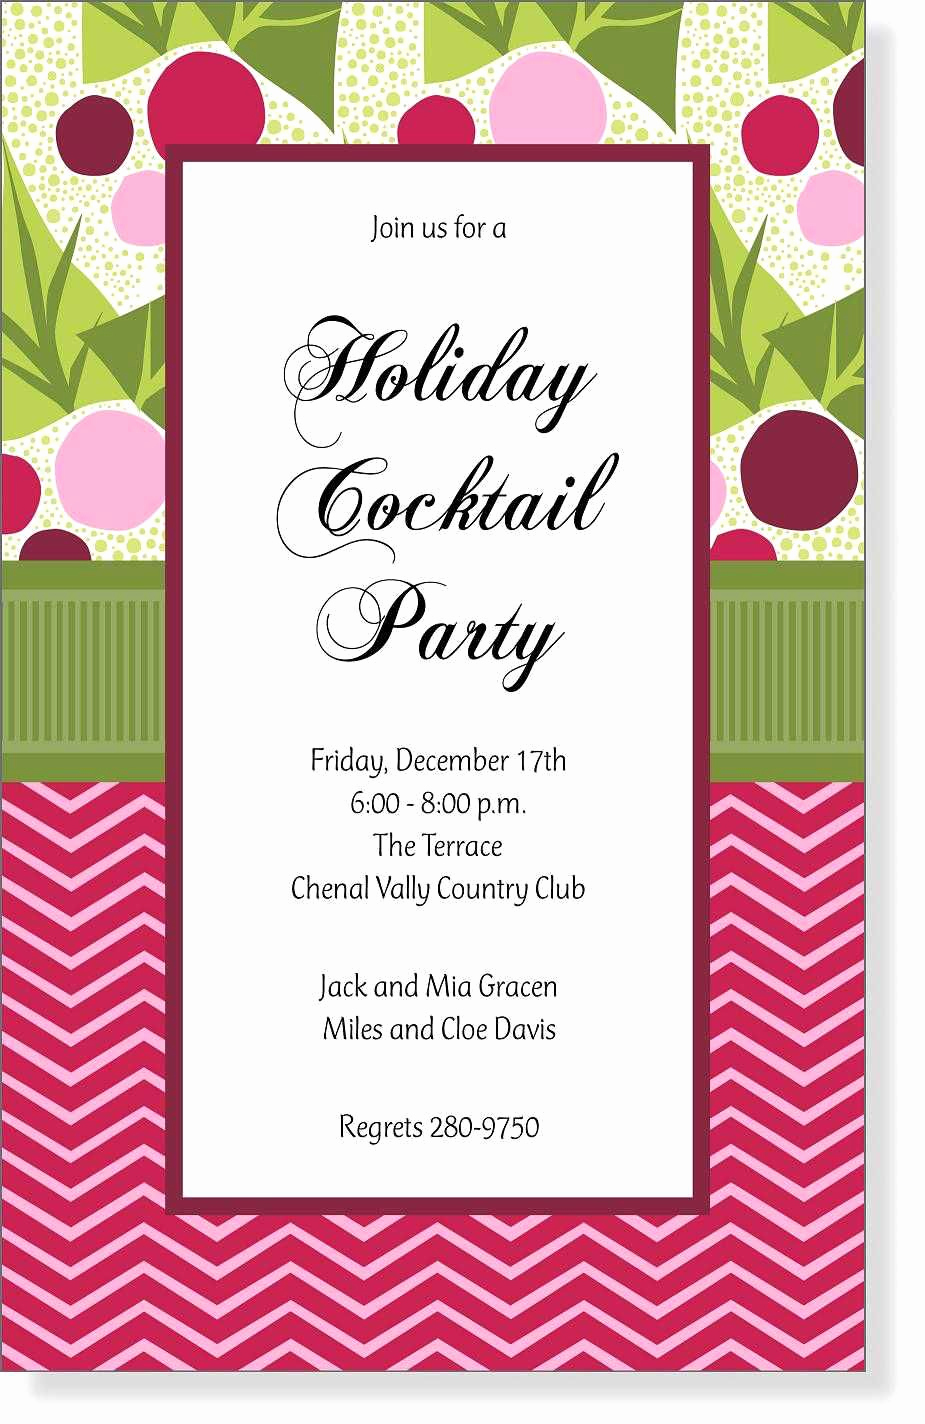 Open House Party Invitation Wording Lovely Christmas Open House Invitation Wording